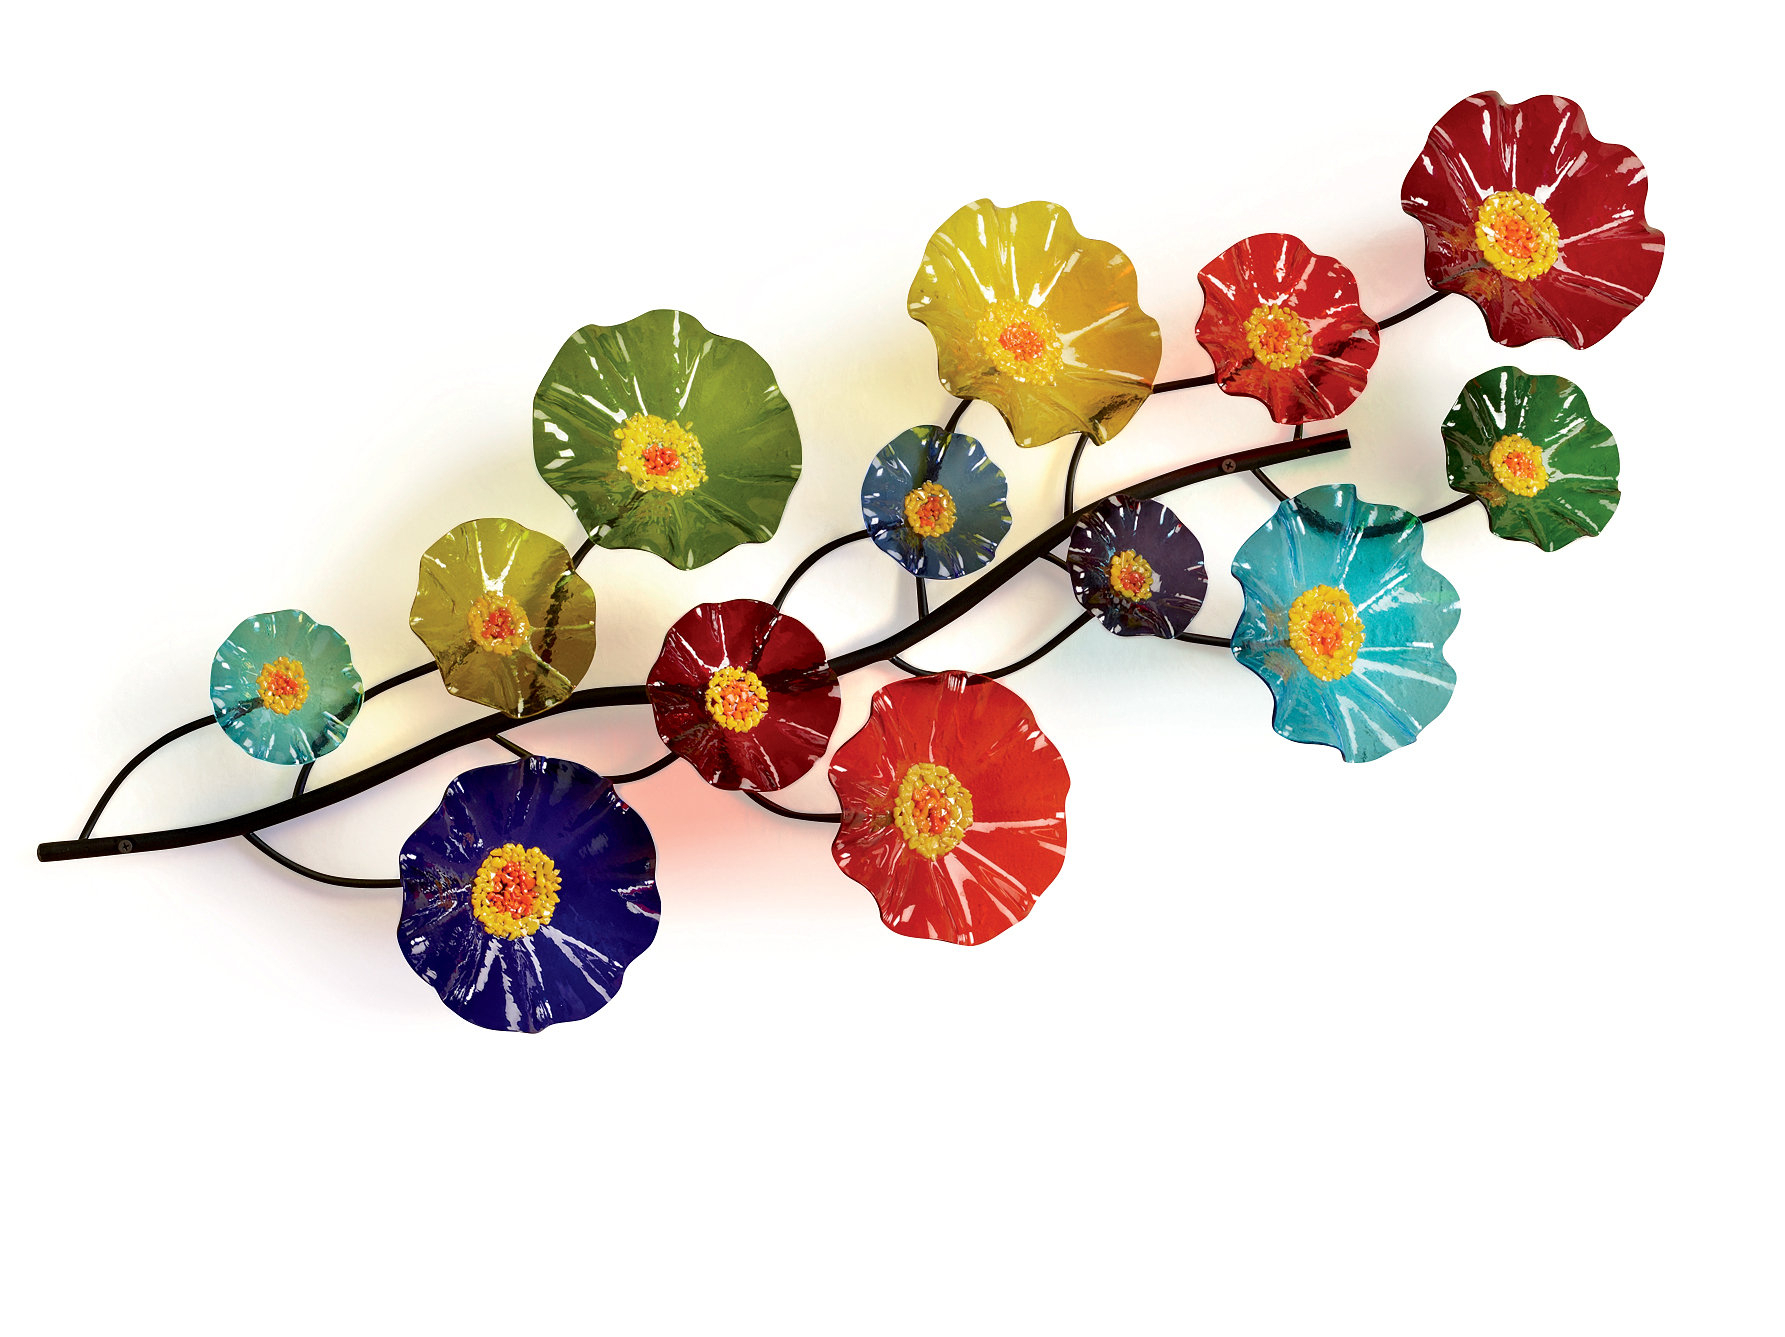 Prism Wall Vinescott Johnson And Shawn Johnson (art Glass Wall Art) | Artful Home For Three Flowers On Vine Wall Decor (View 11 of 30)